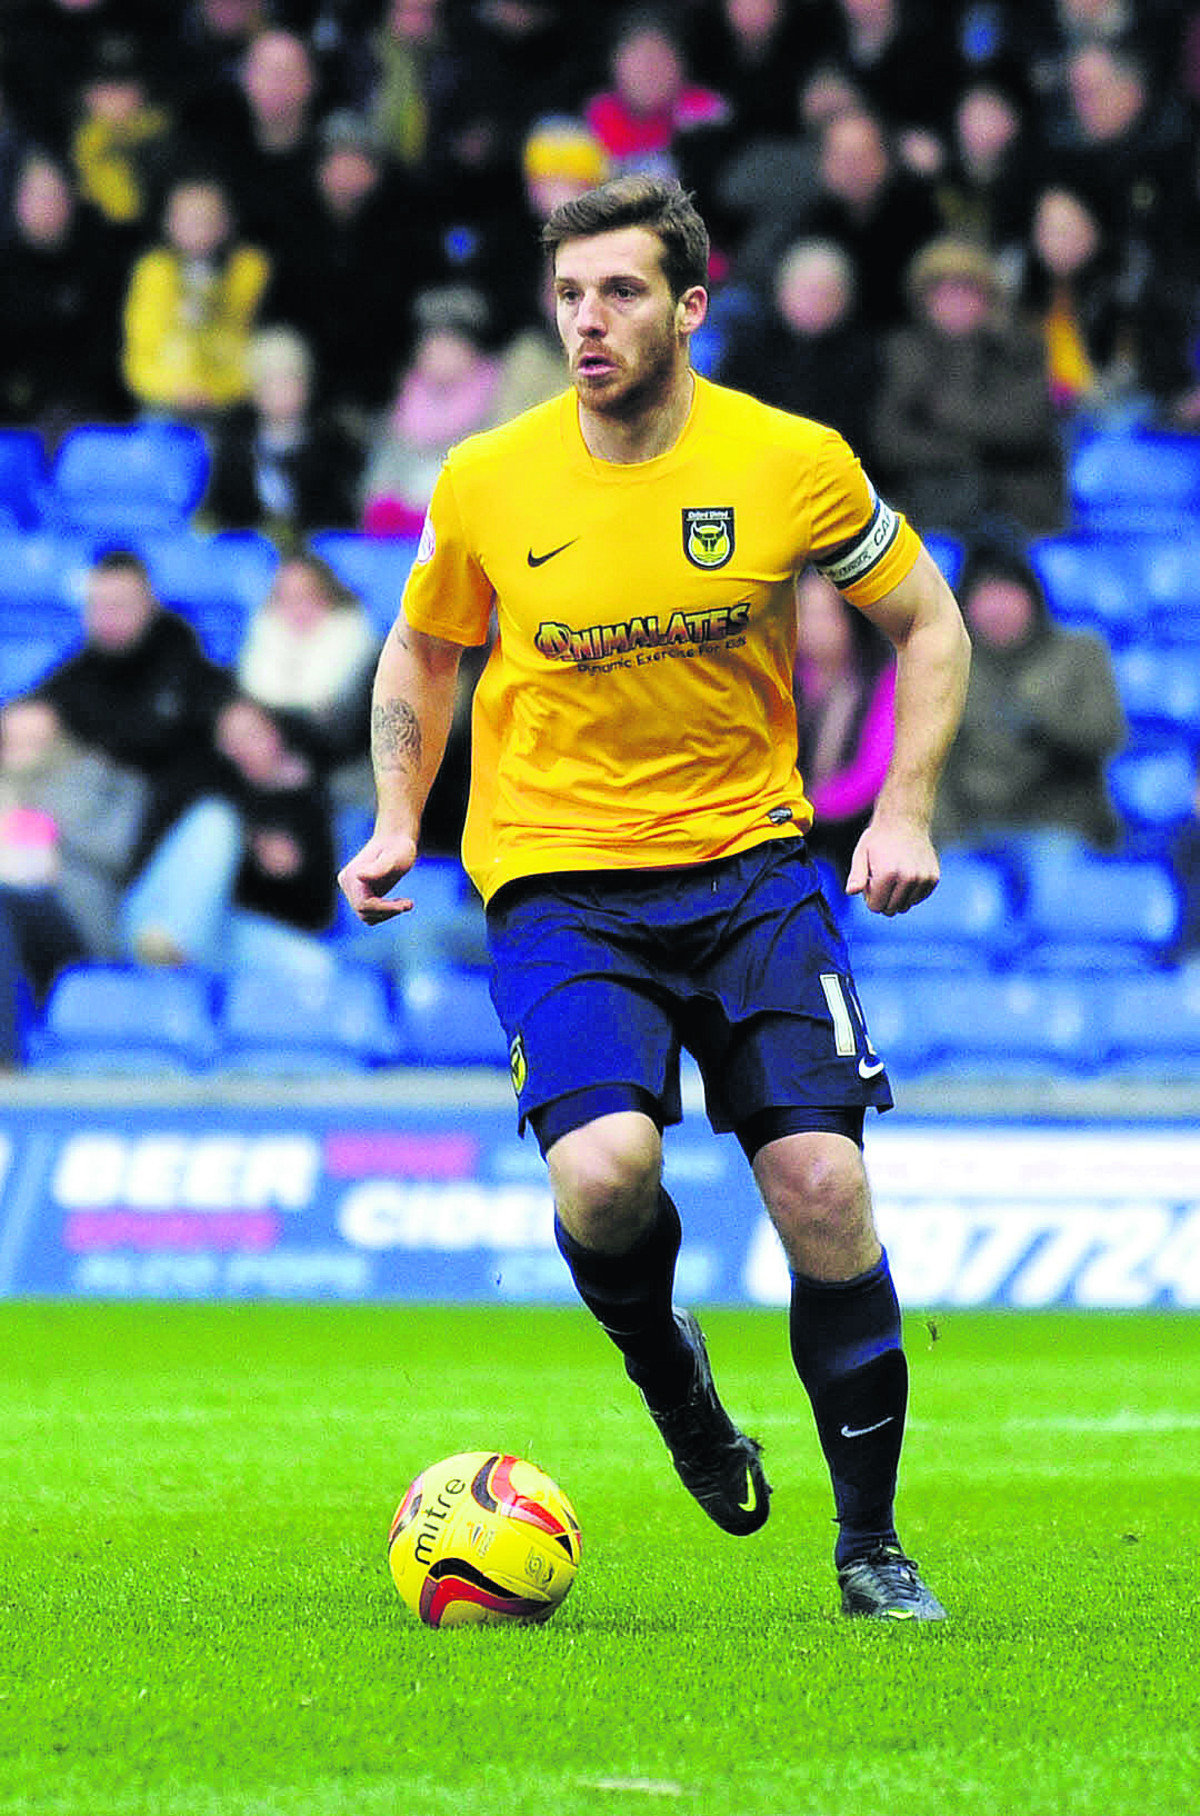 CAPTAIN FANTASTIC: Johnny Mullins aims to lead from the front with the Oxford United armband while regular skipper Jake Wright is sidelined